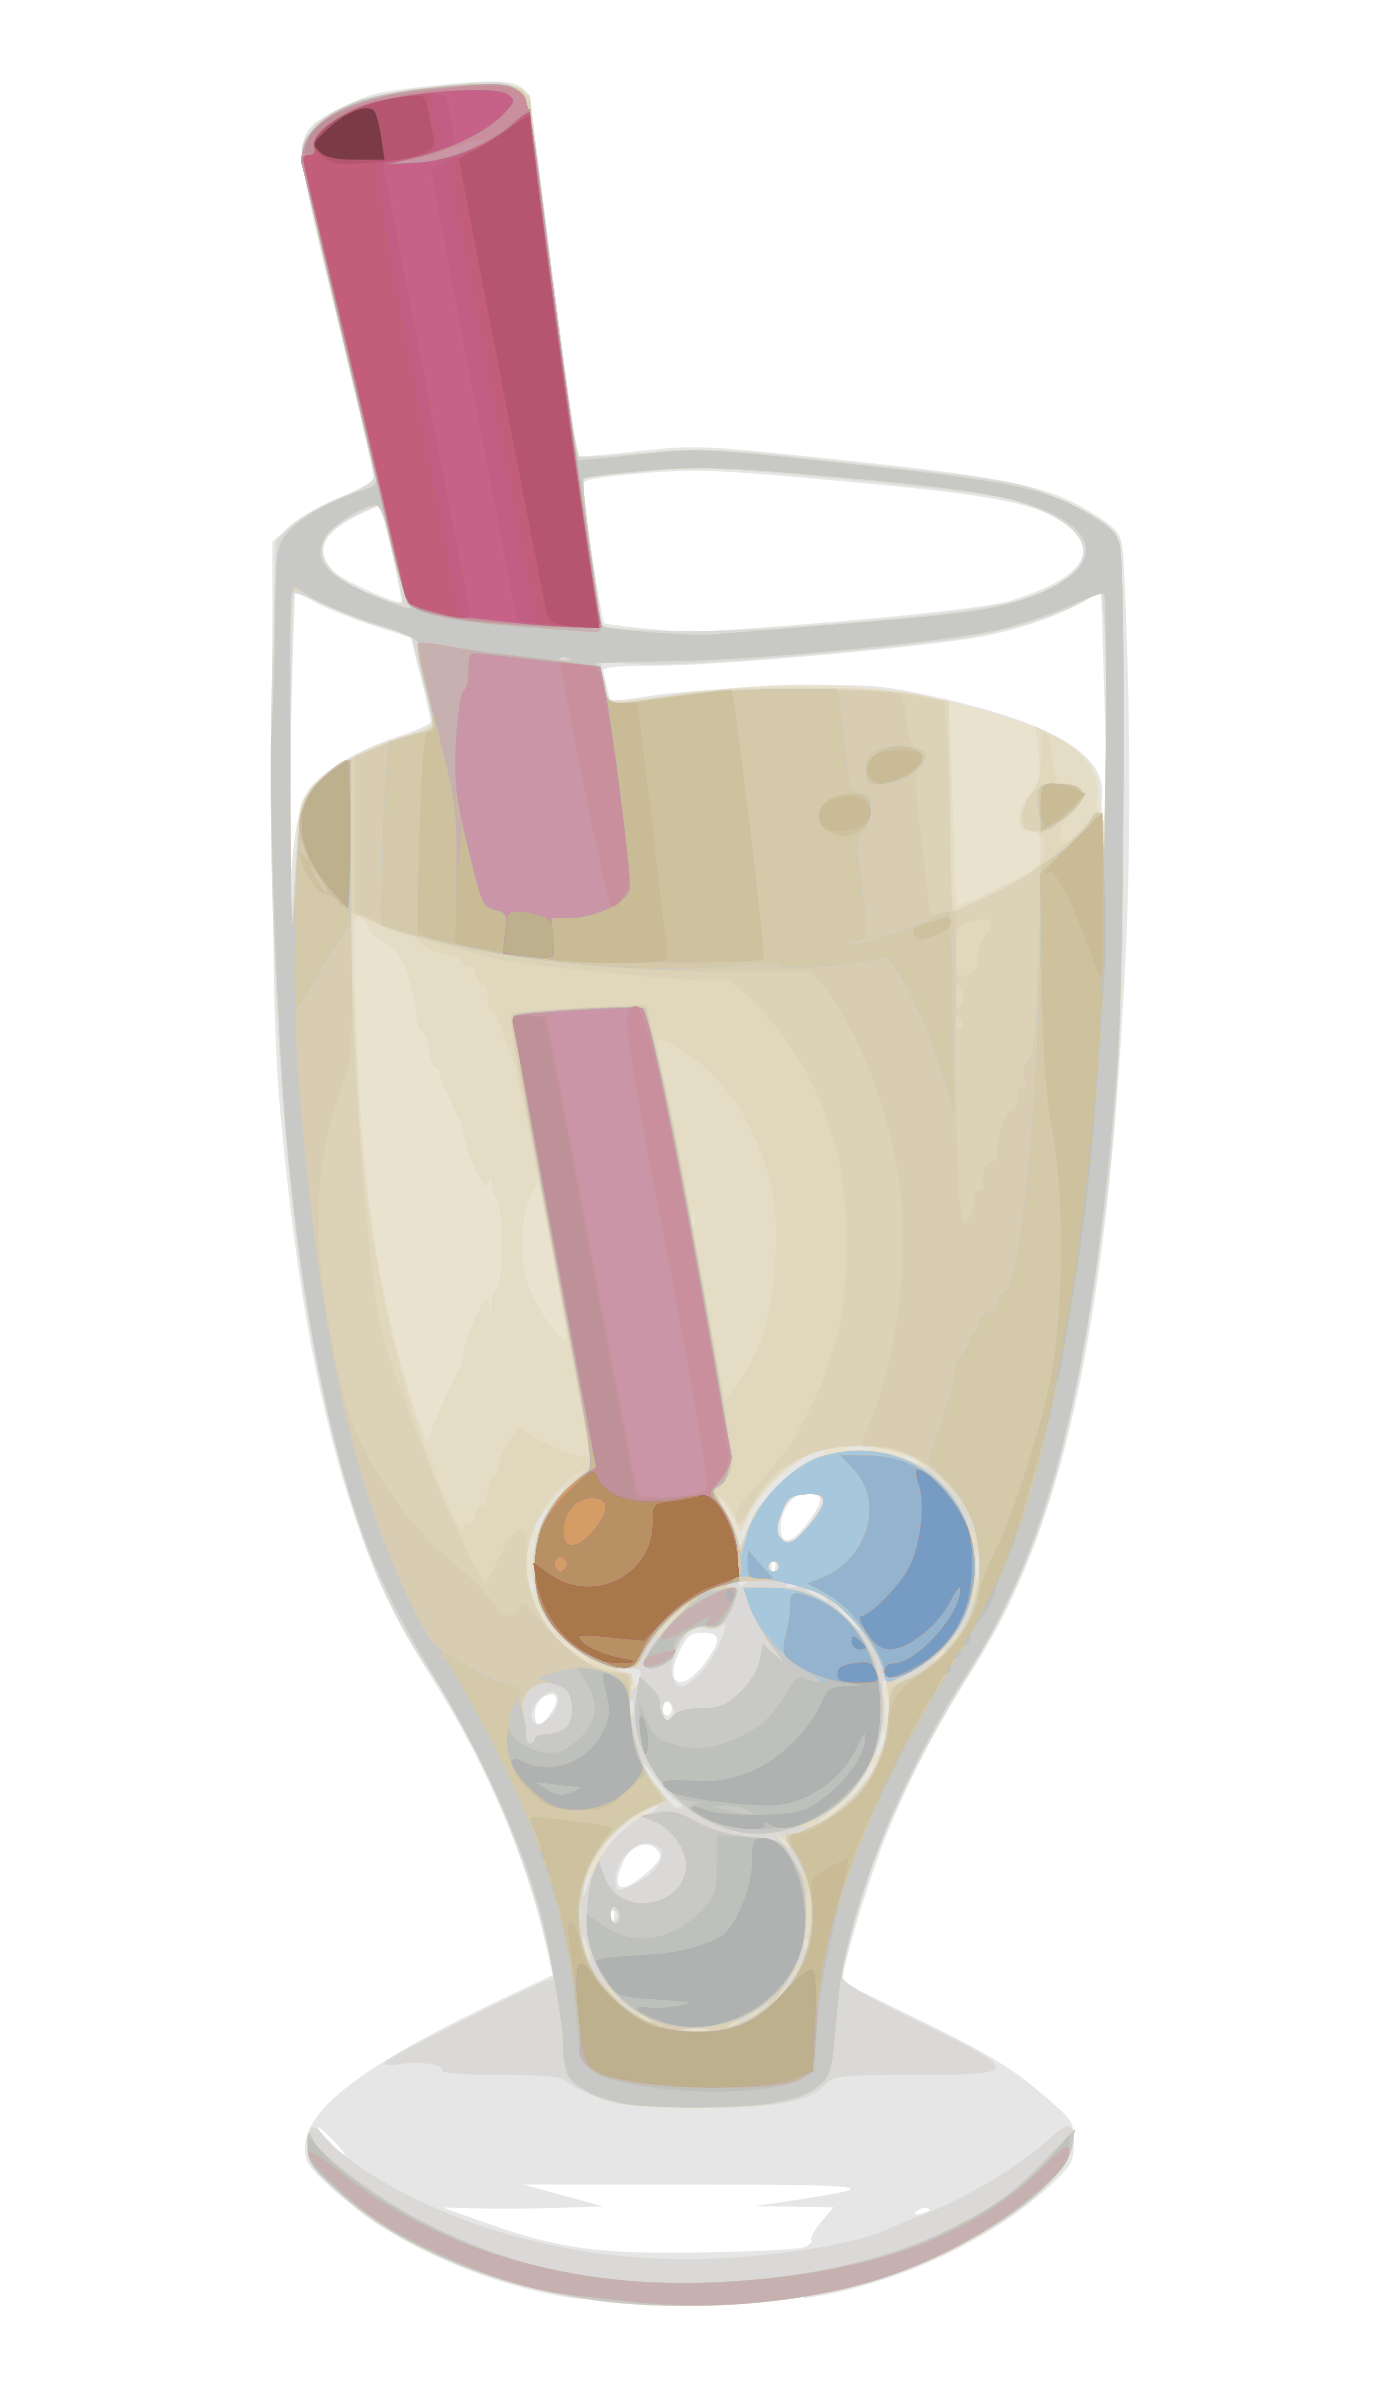 Bubble tea glitch by. Glass clipart smoothie